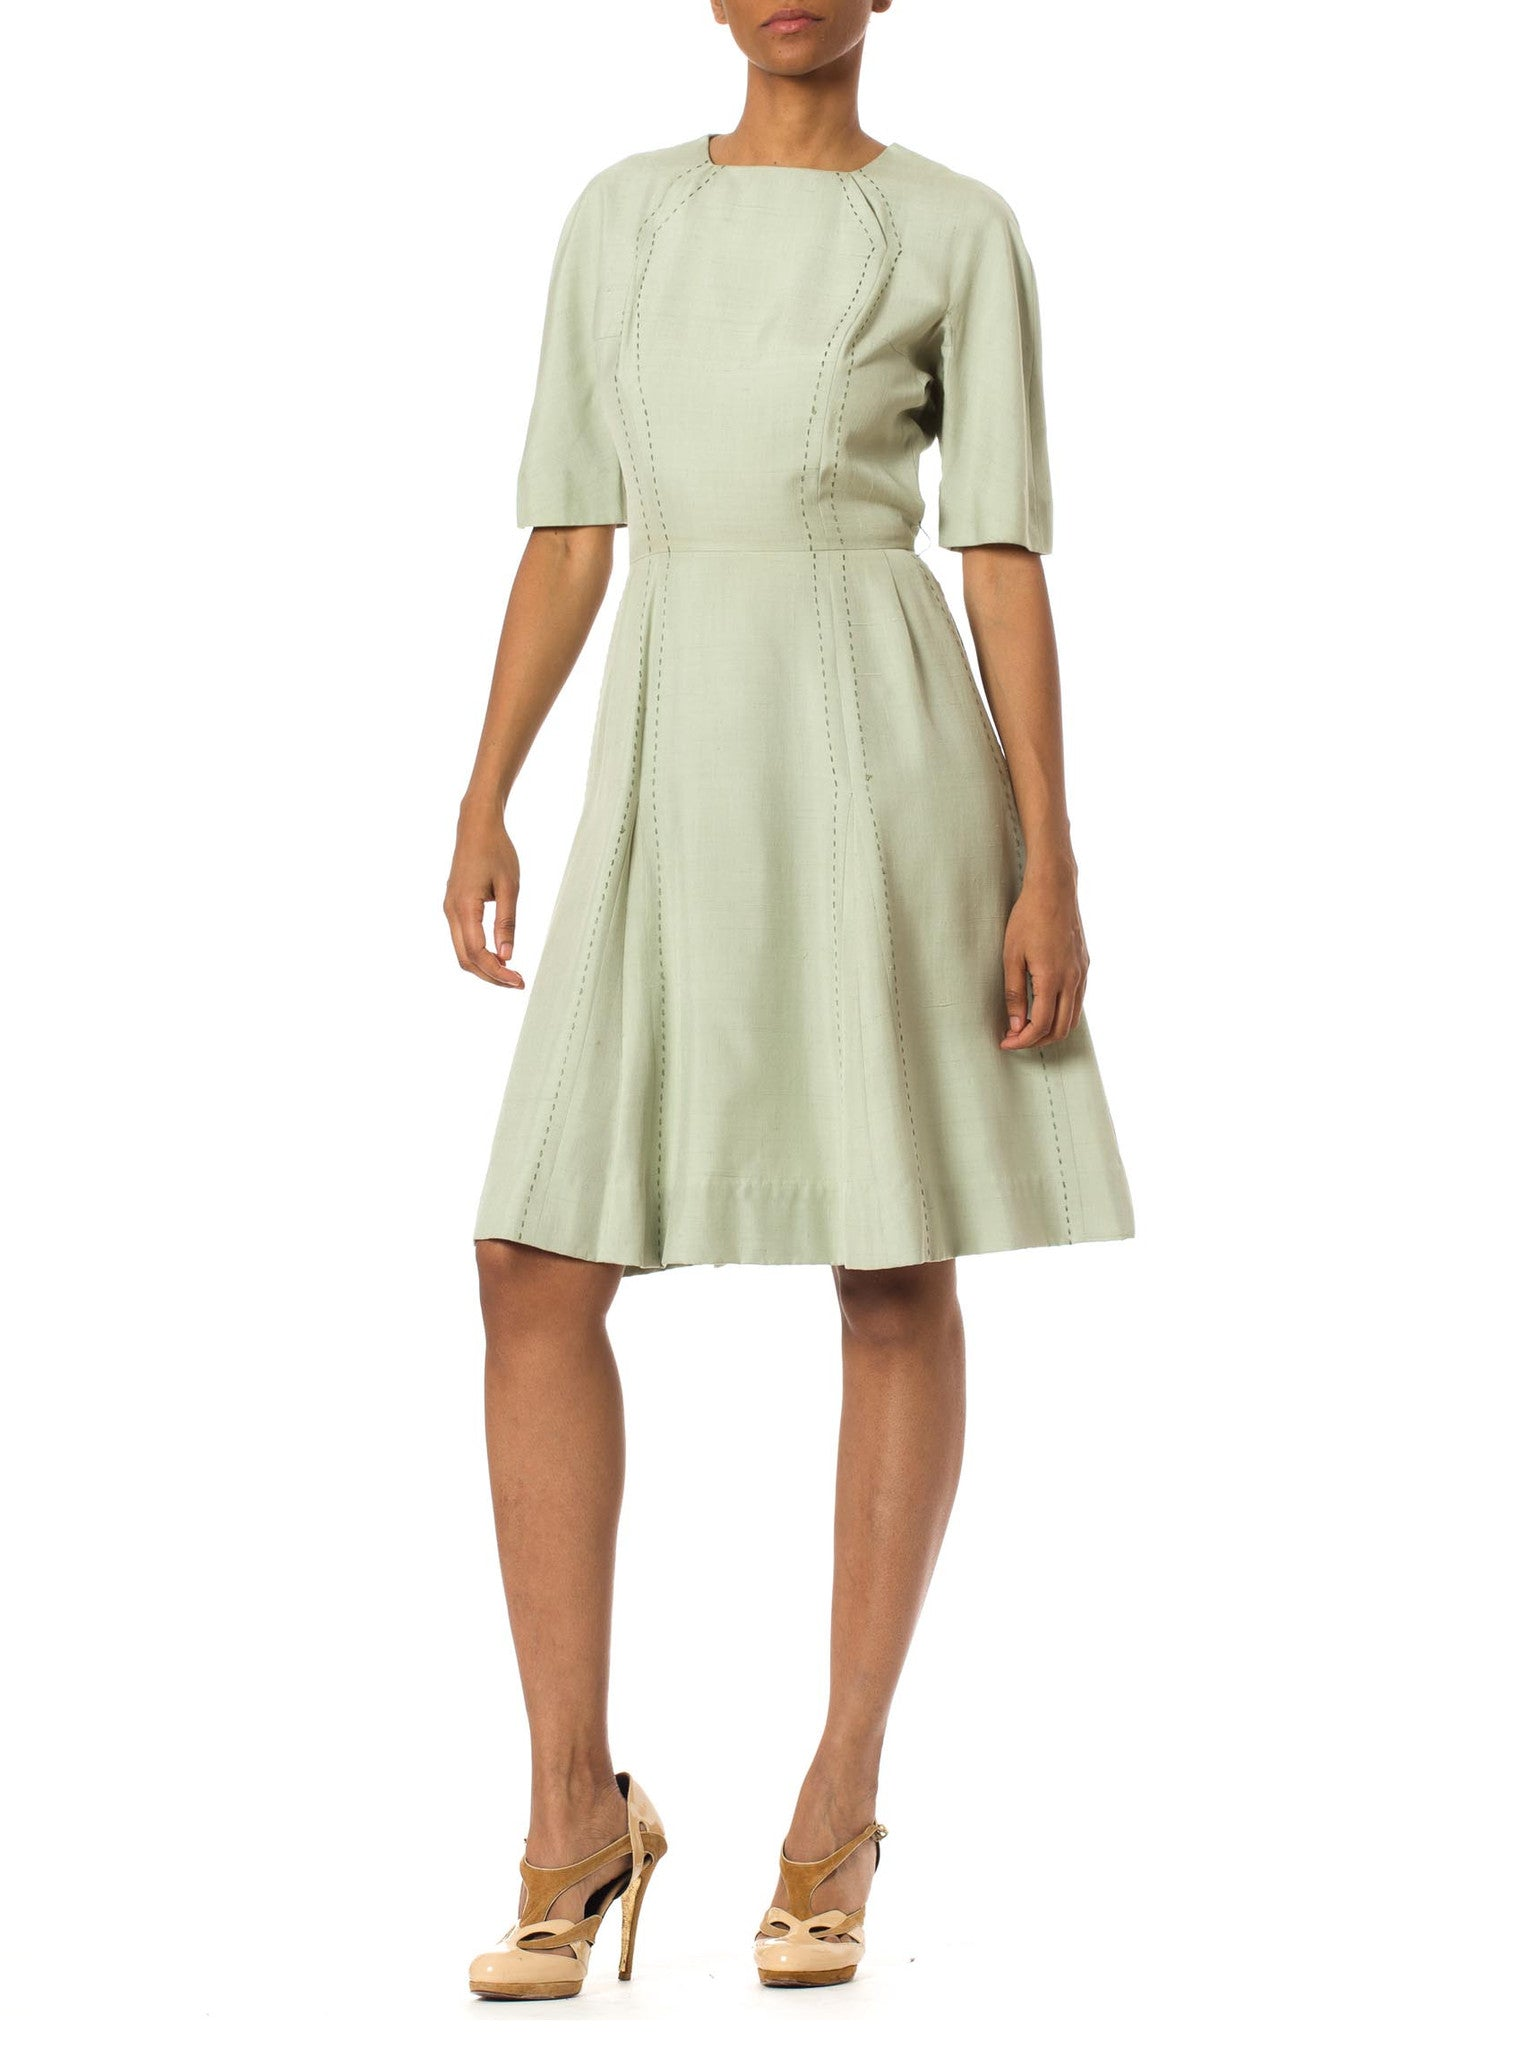 1950's Light Green Texturized Linen Dress